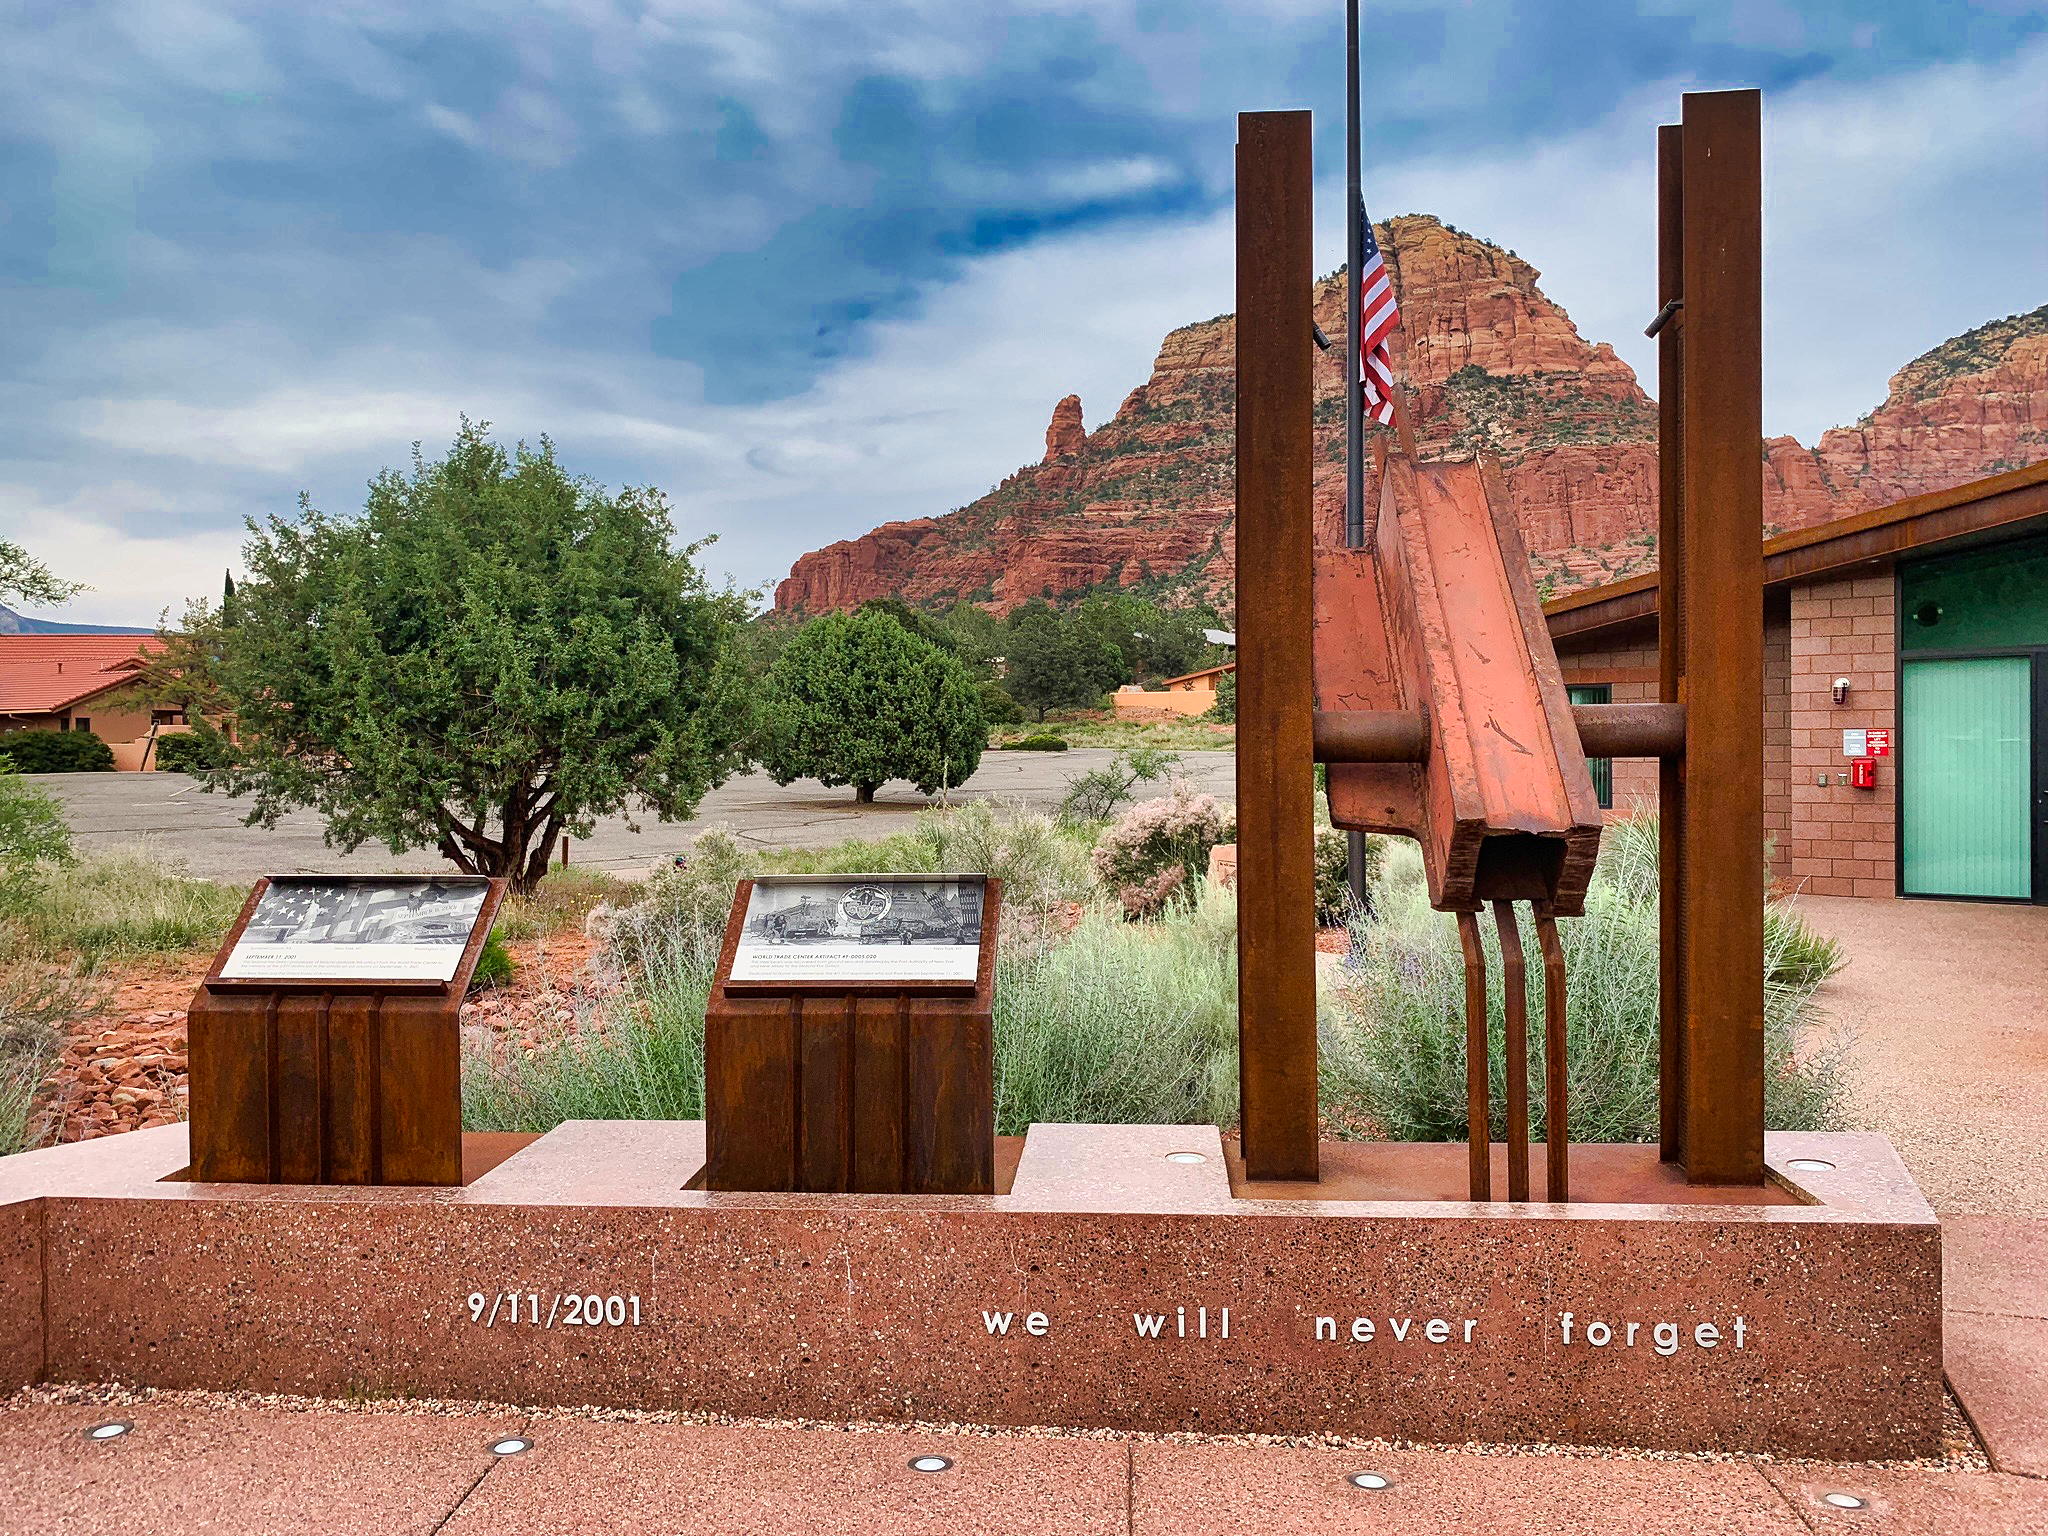 We Will Never Forget – Sedona Fire District's WTC Artifact Ground Zero